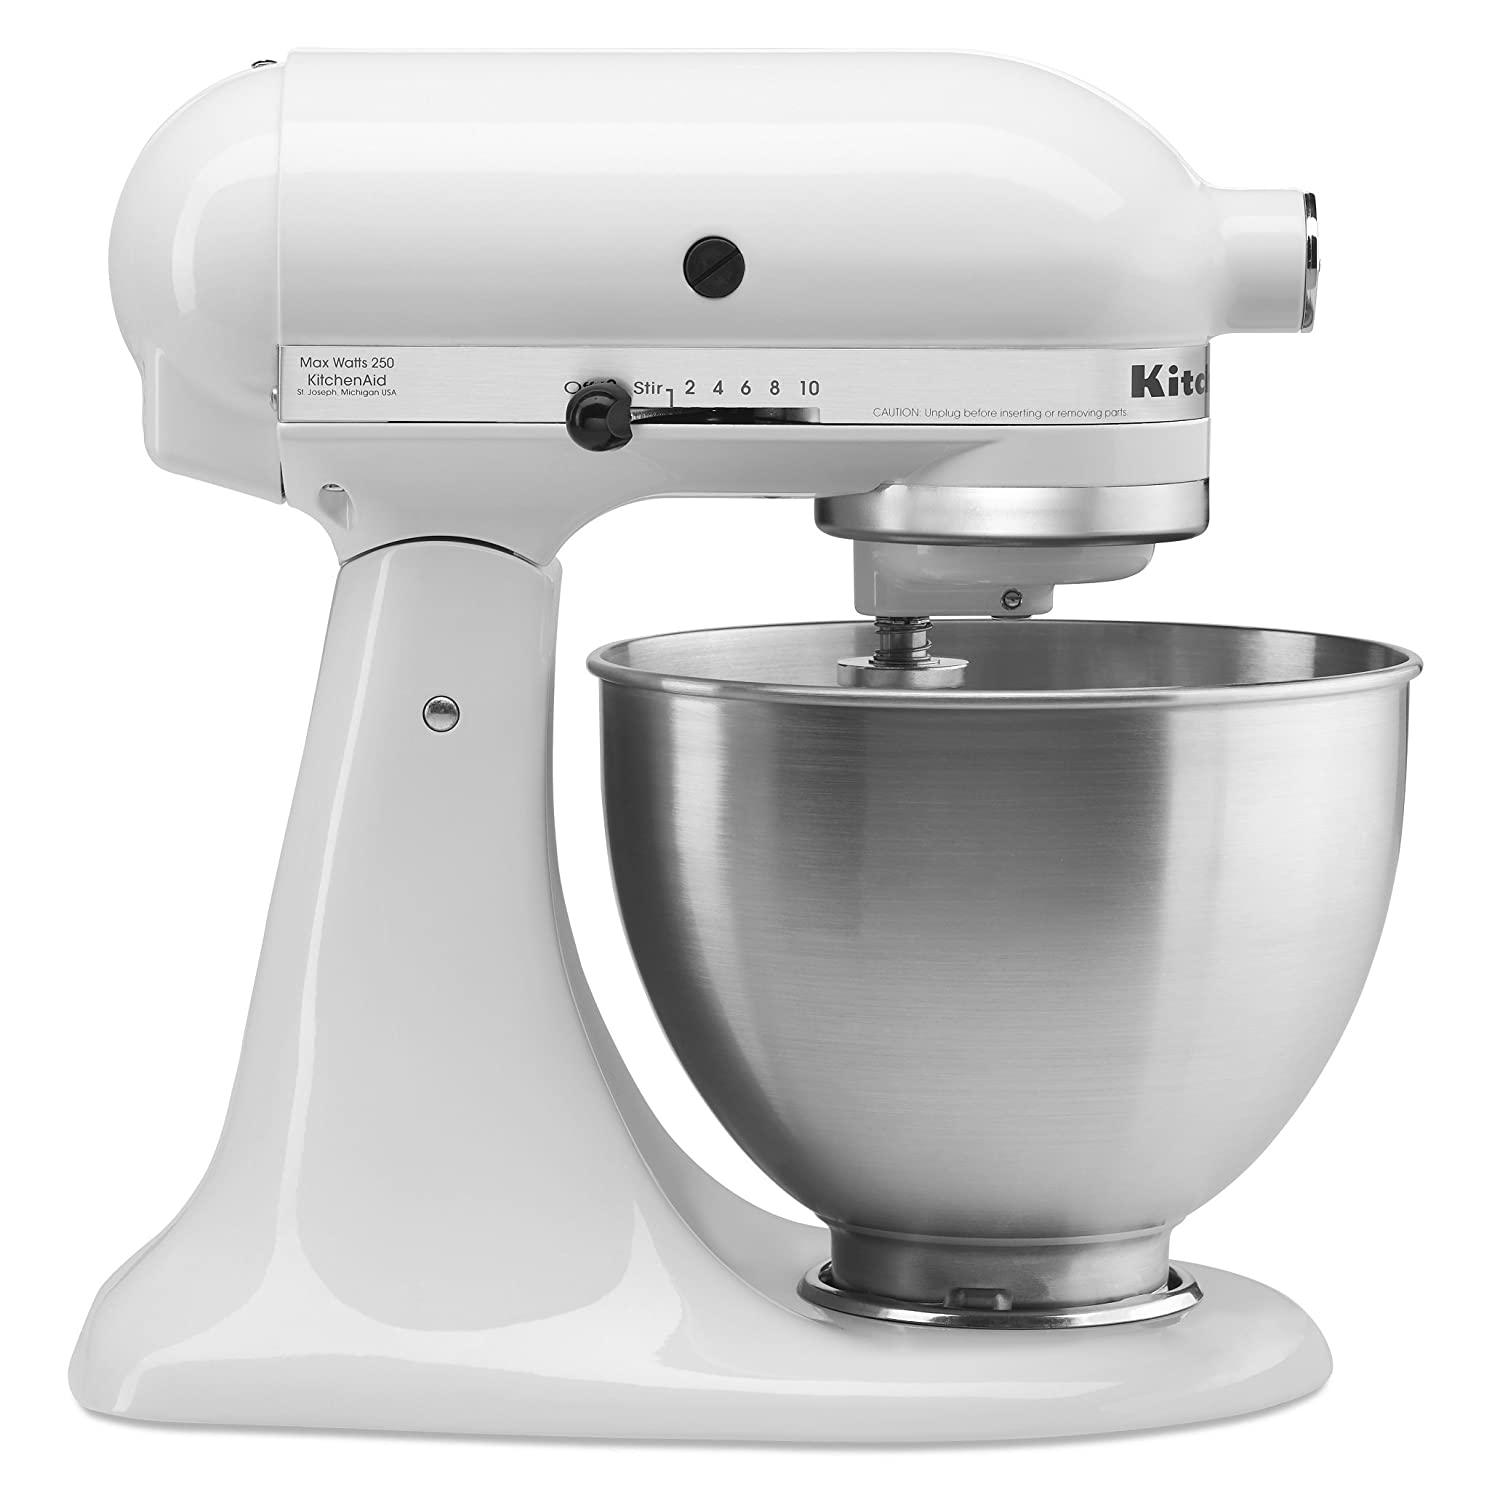 Delicieux Amazon.com: KitchenAid 4 1/2 Quart Ultra Power Stand Mixer, White: Electric  Stand Mixers: Kitchen U0026 Dining